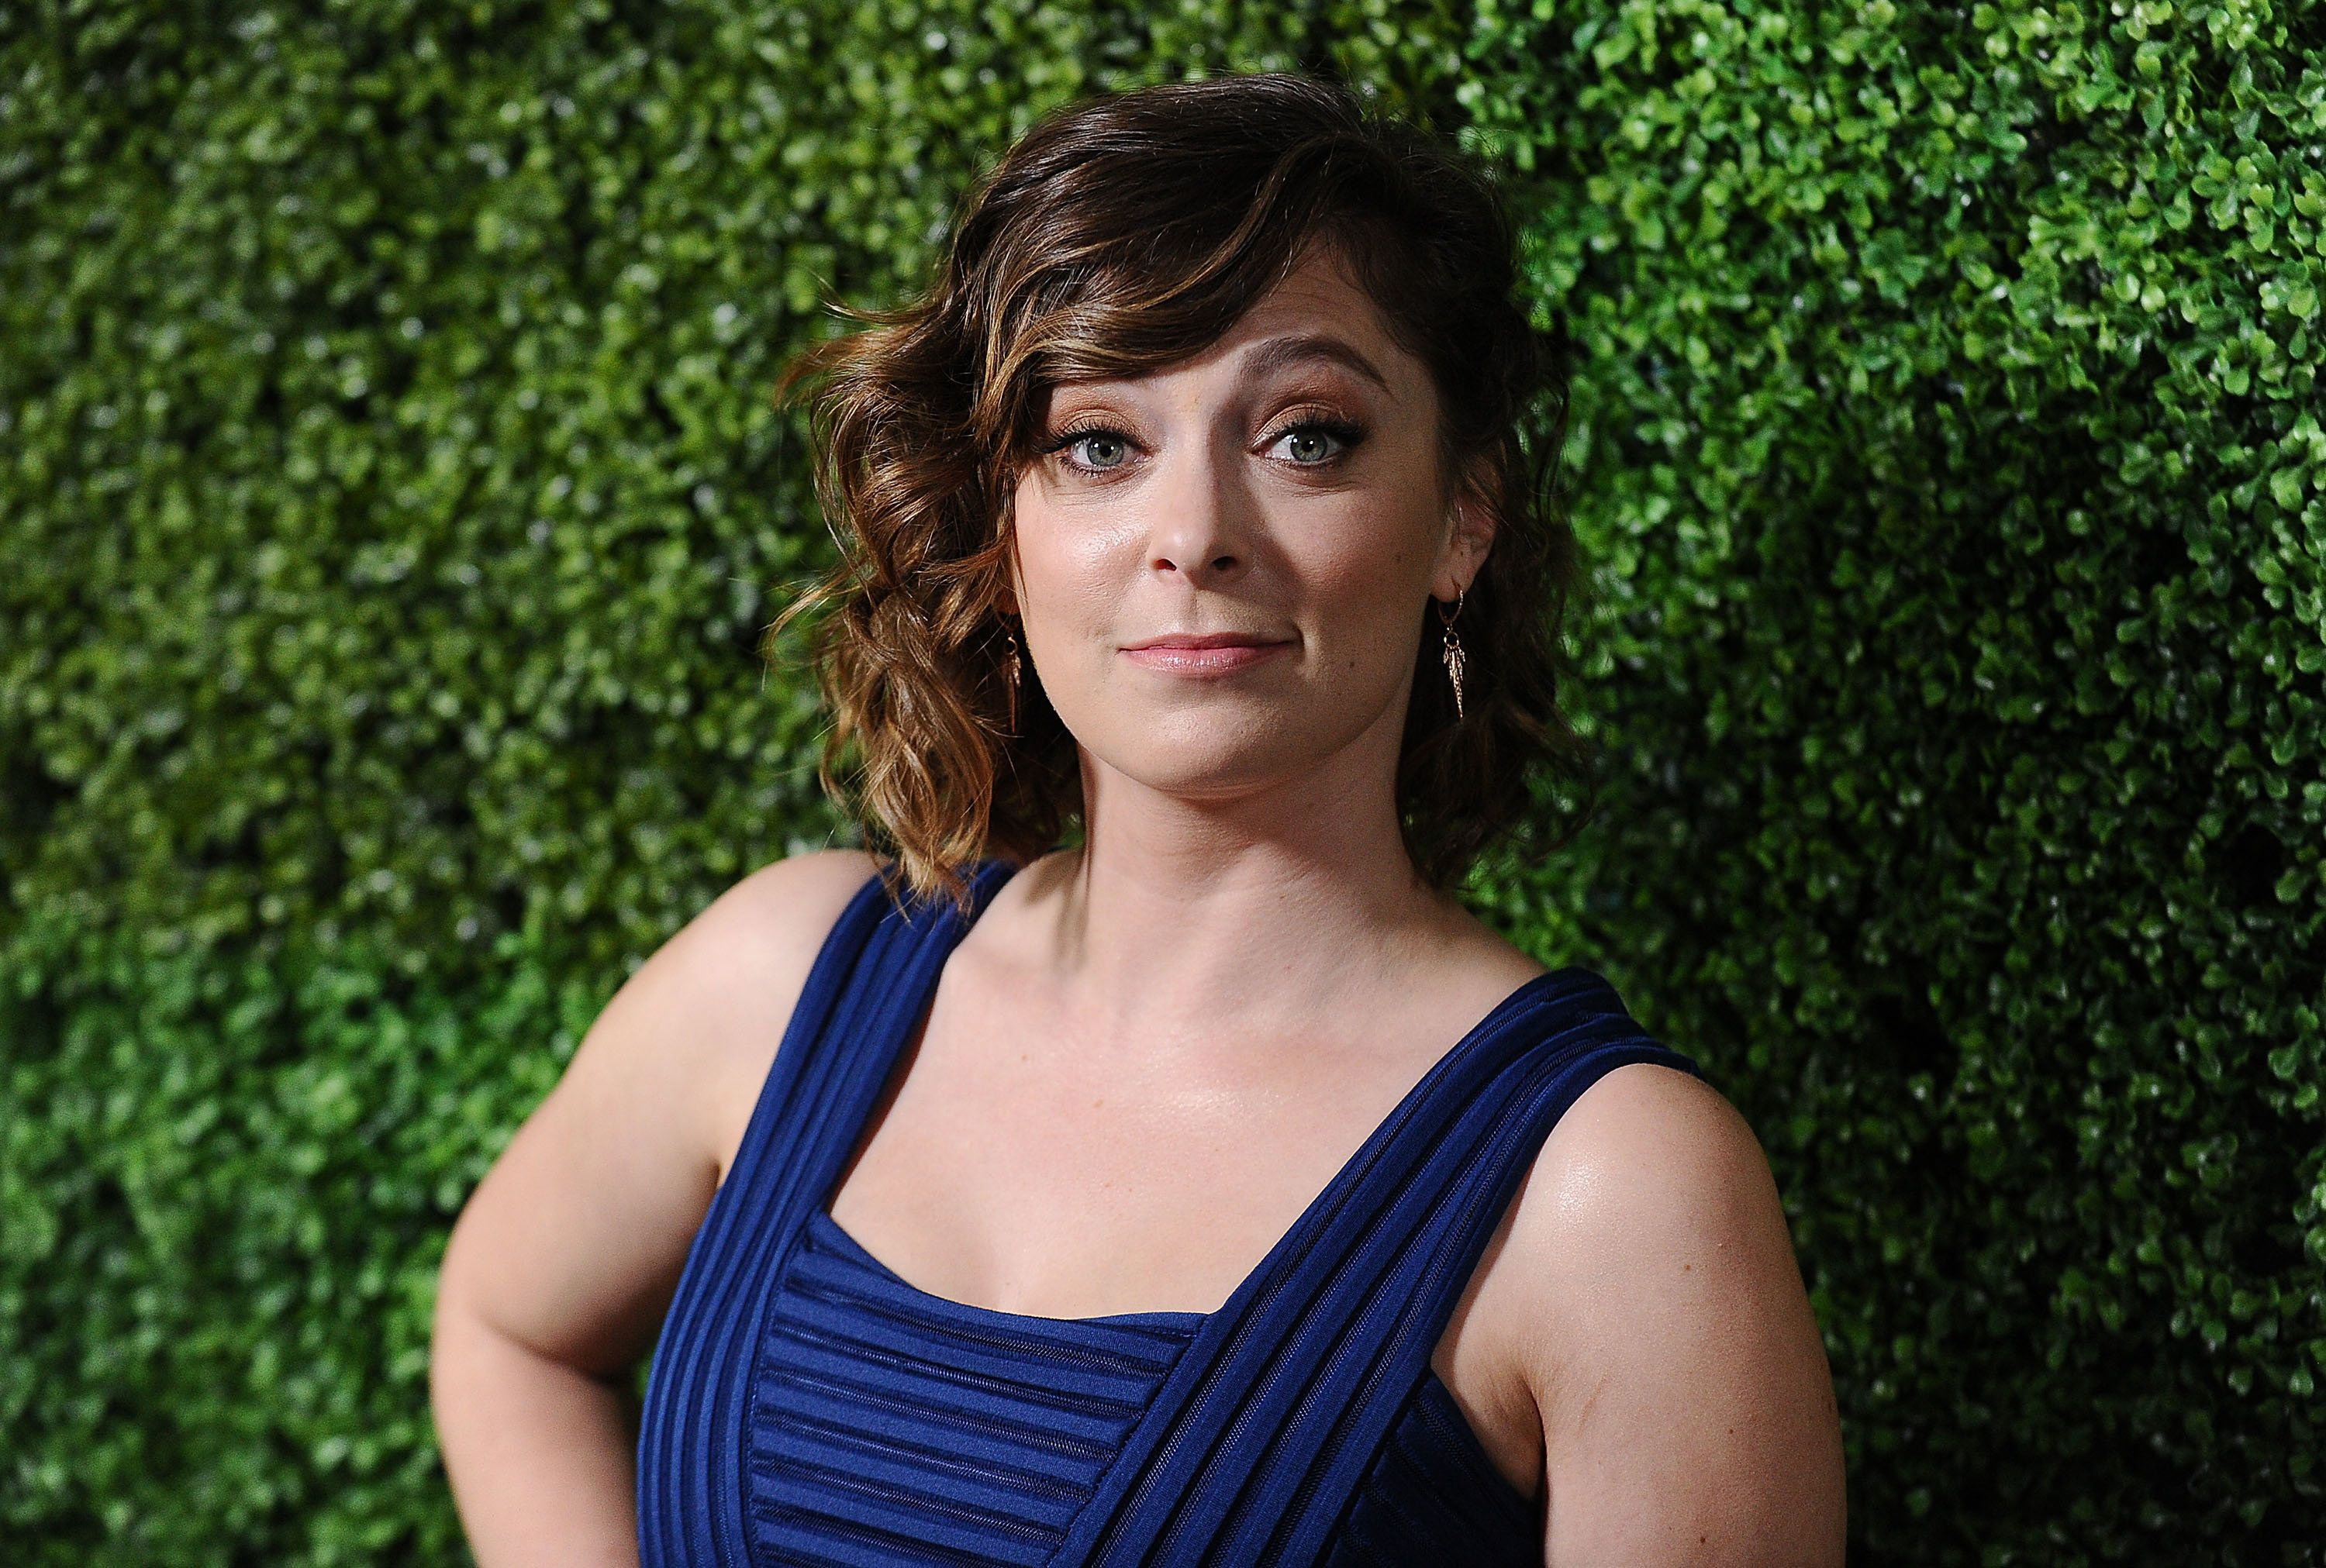 WEST HOLLYWOOD, CA - JUNE 02:  Actress Rachel Bloom attends the 4th annual CBS Television Studios Summer Soiree at Palihouse on June 2, 2016 in West Hollywood, California.  (Photo by Jason LaVeris/FilmMagic)